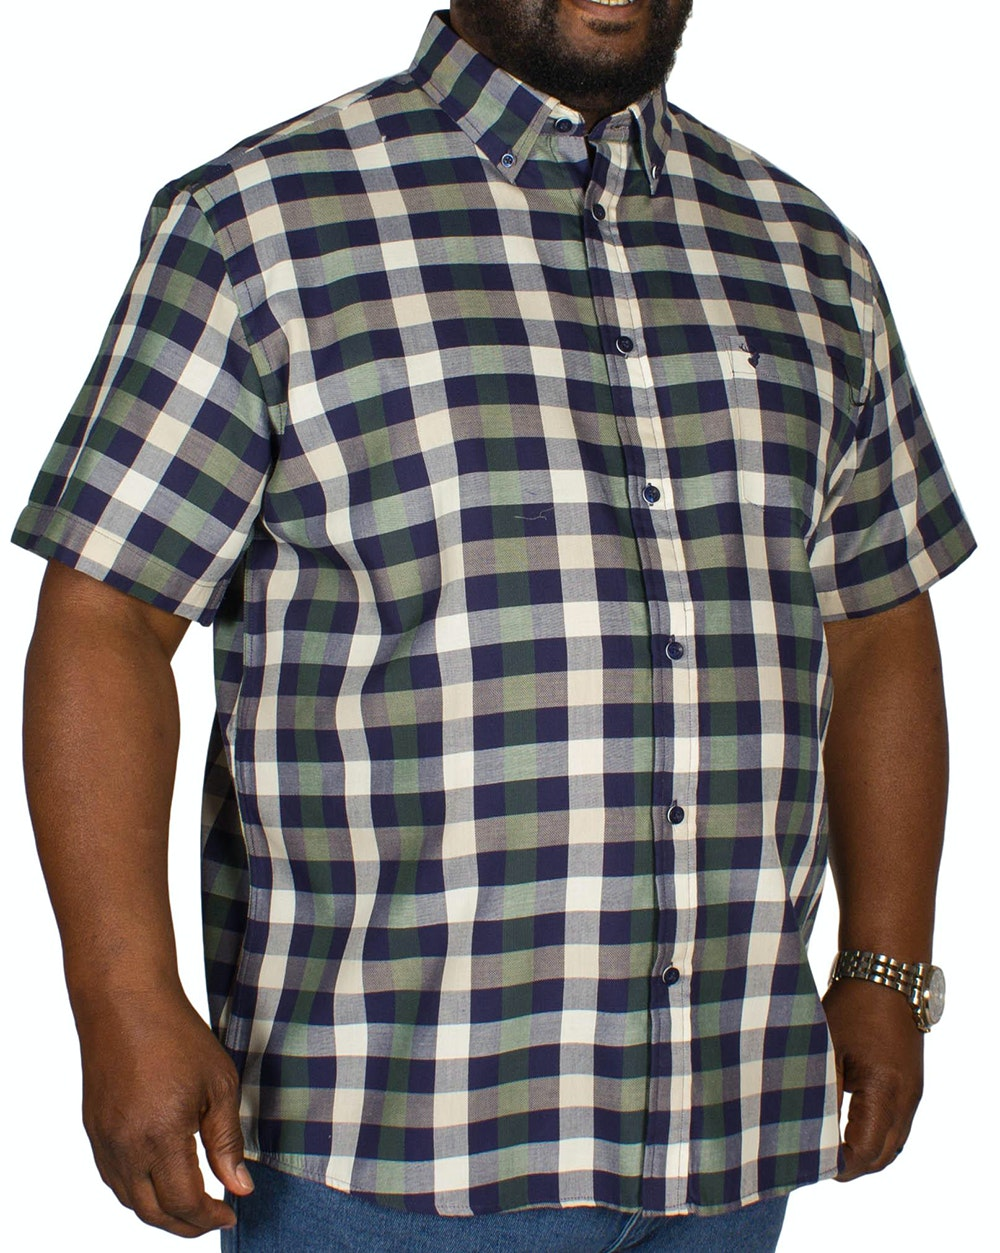 KAM Short Sleeve Check Shirt Dark Ivy/Blue